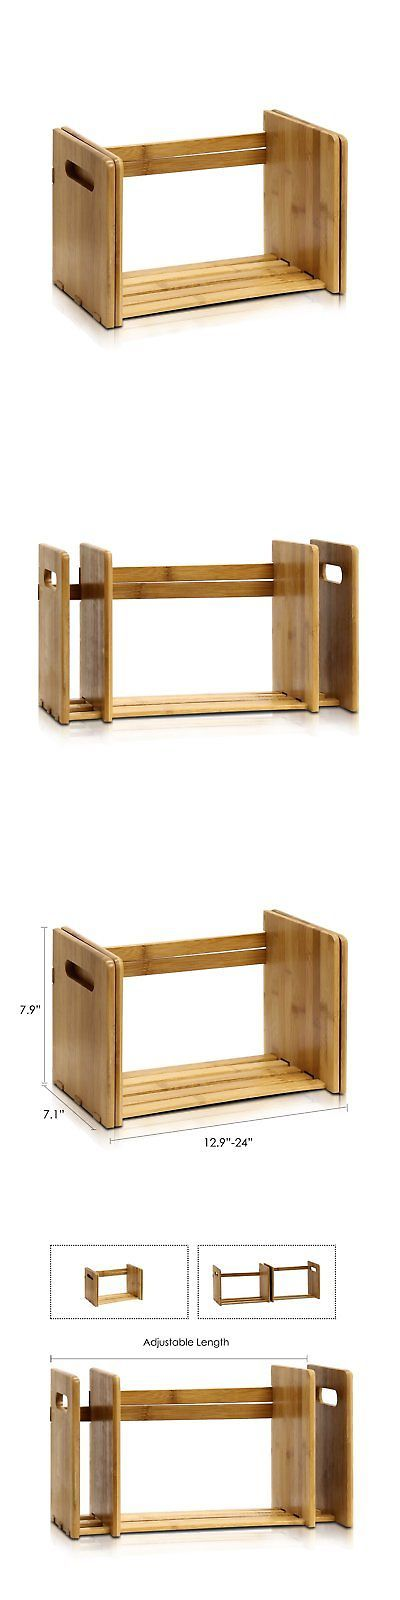 Furinno FNCL-33021 Bamboo Extension Book Rack Natural